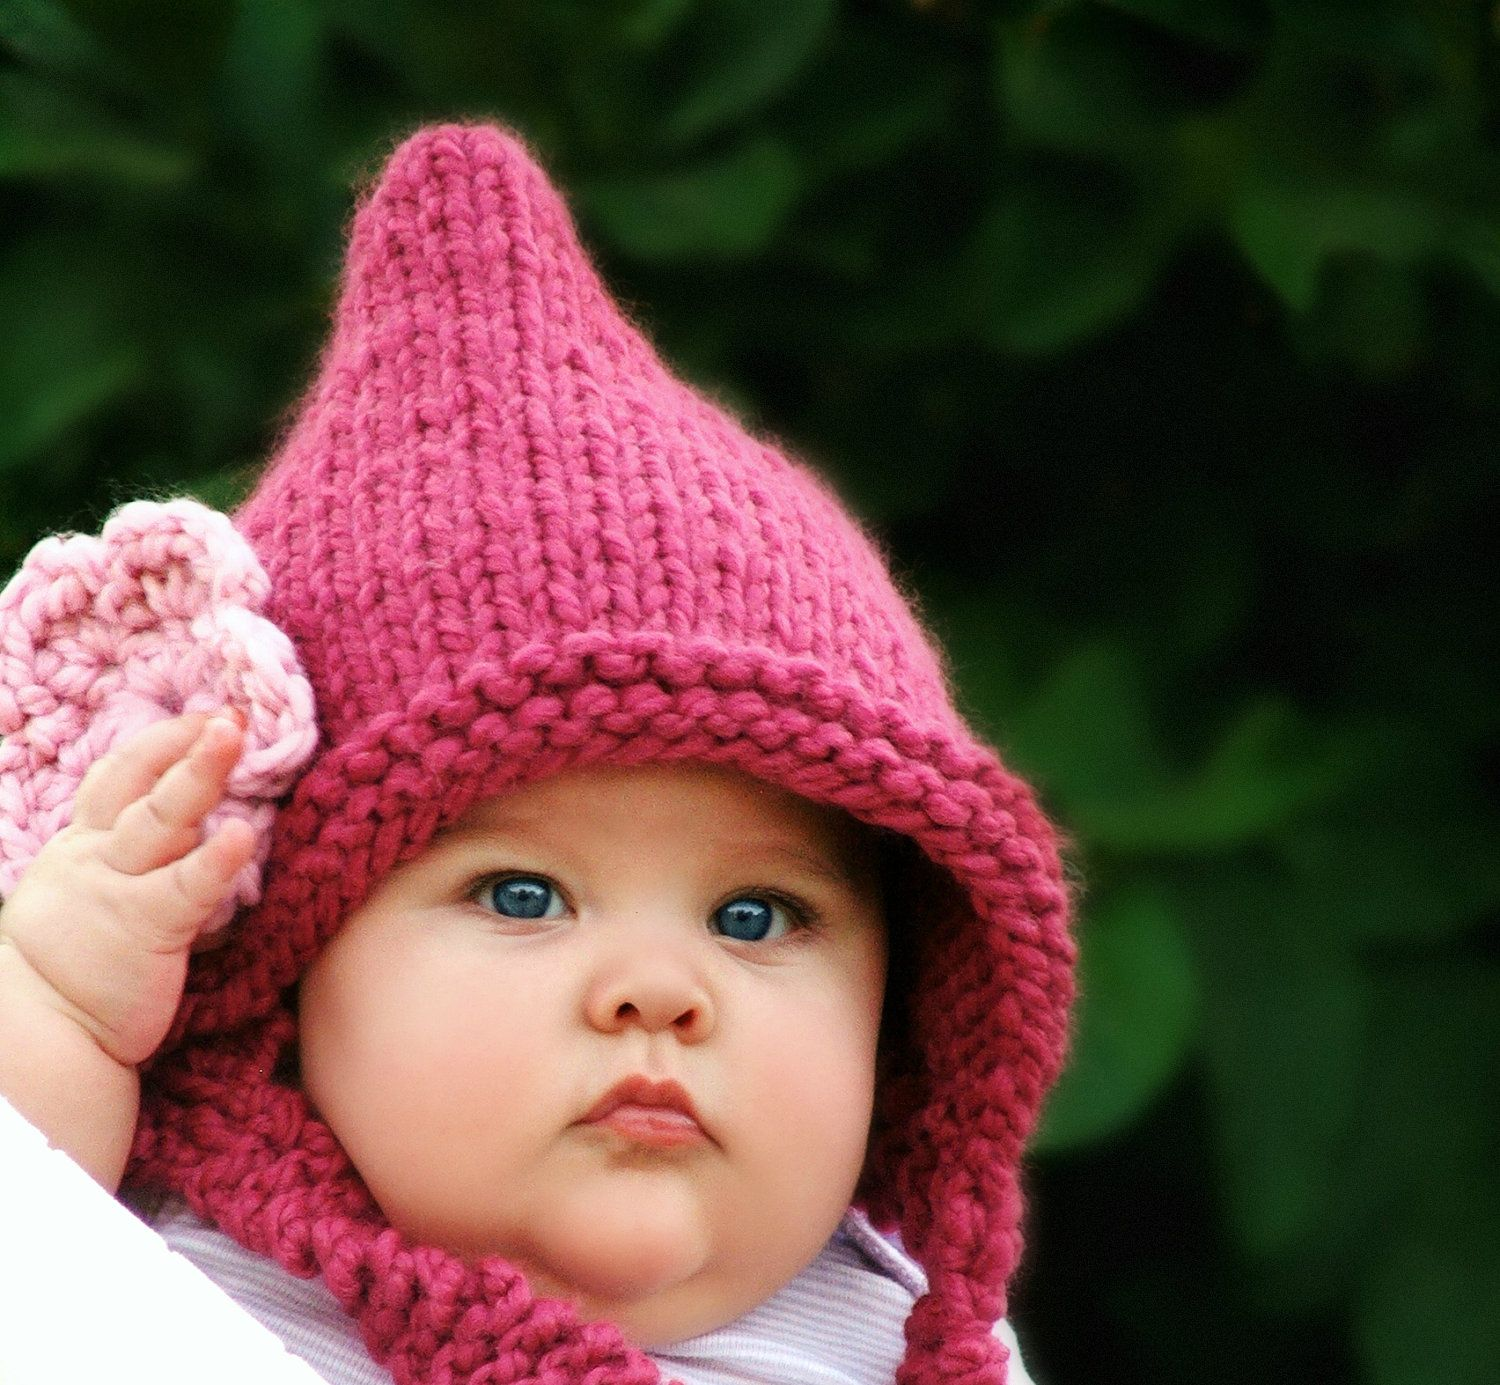 Baby Pixie Hat knitting pattern $5.50 Click here to find: https ...